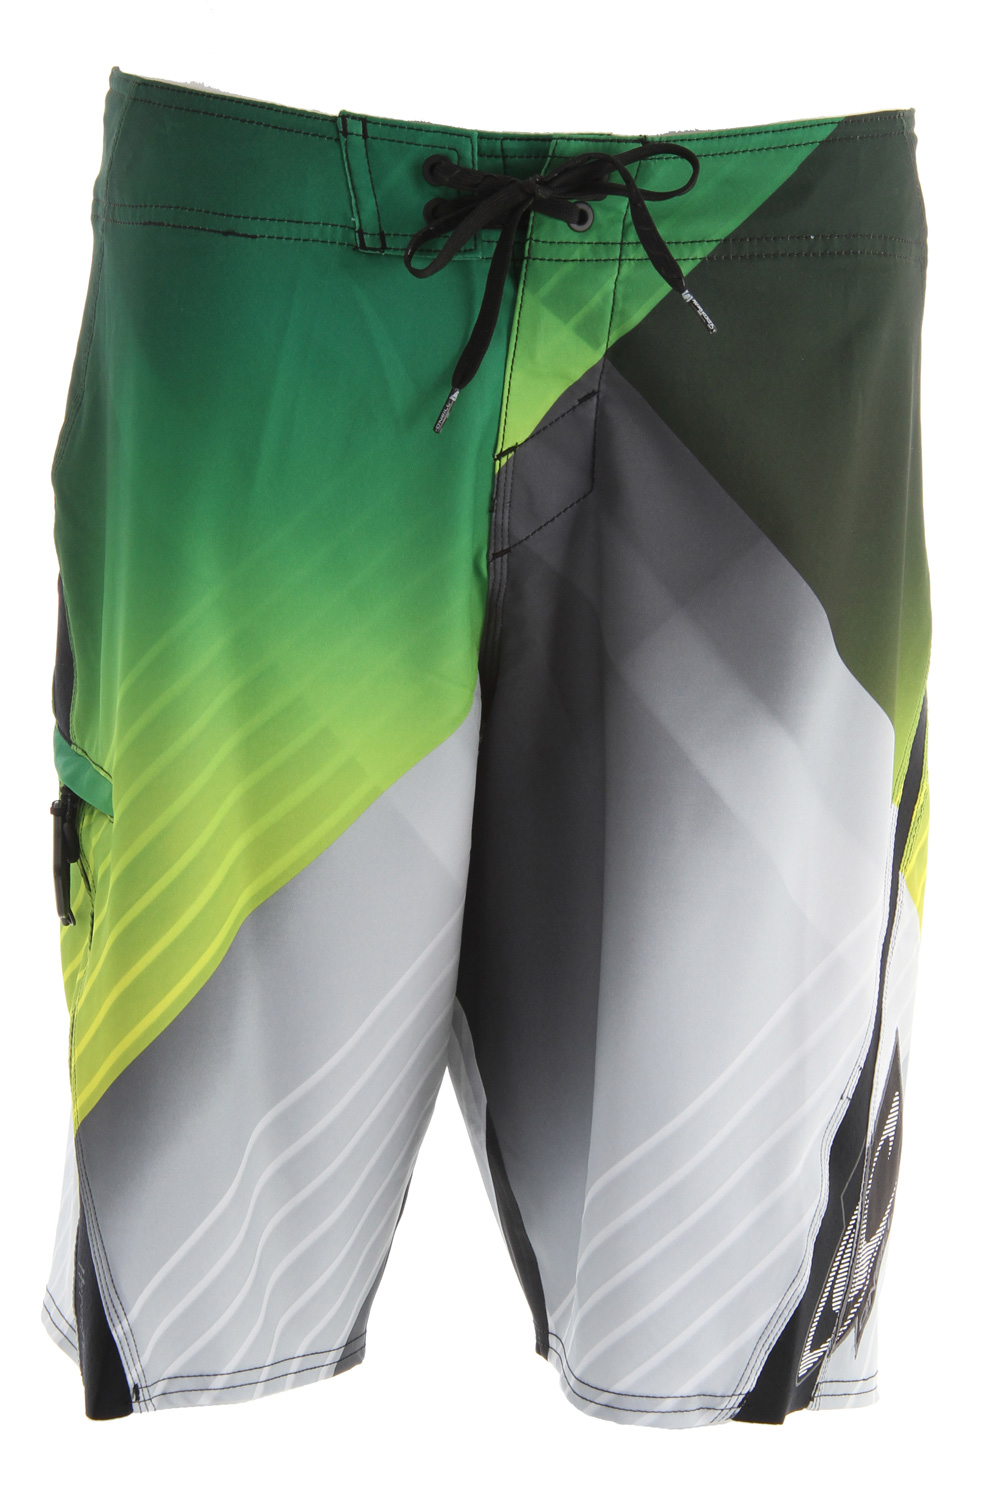 "Surf Key Features of the O'Neill Lopez Freak Boardshorts: New psychostretch 21"" ousteam Engineered printed boardshort Hyperprene stretch panels Superfly 2.0 closure Locking drawcord Welt zip pocket Embroidered, appliqued and screened logos - $42.95"